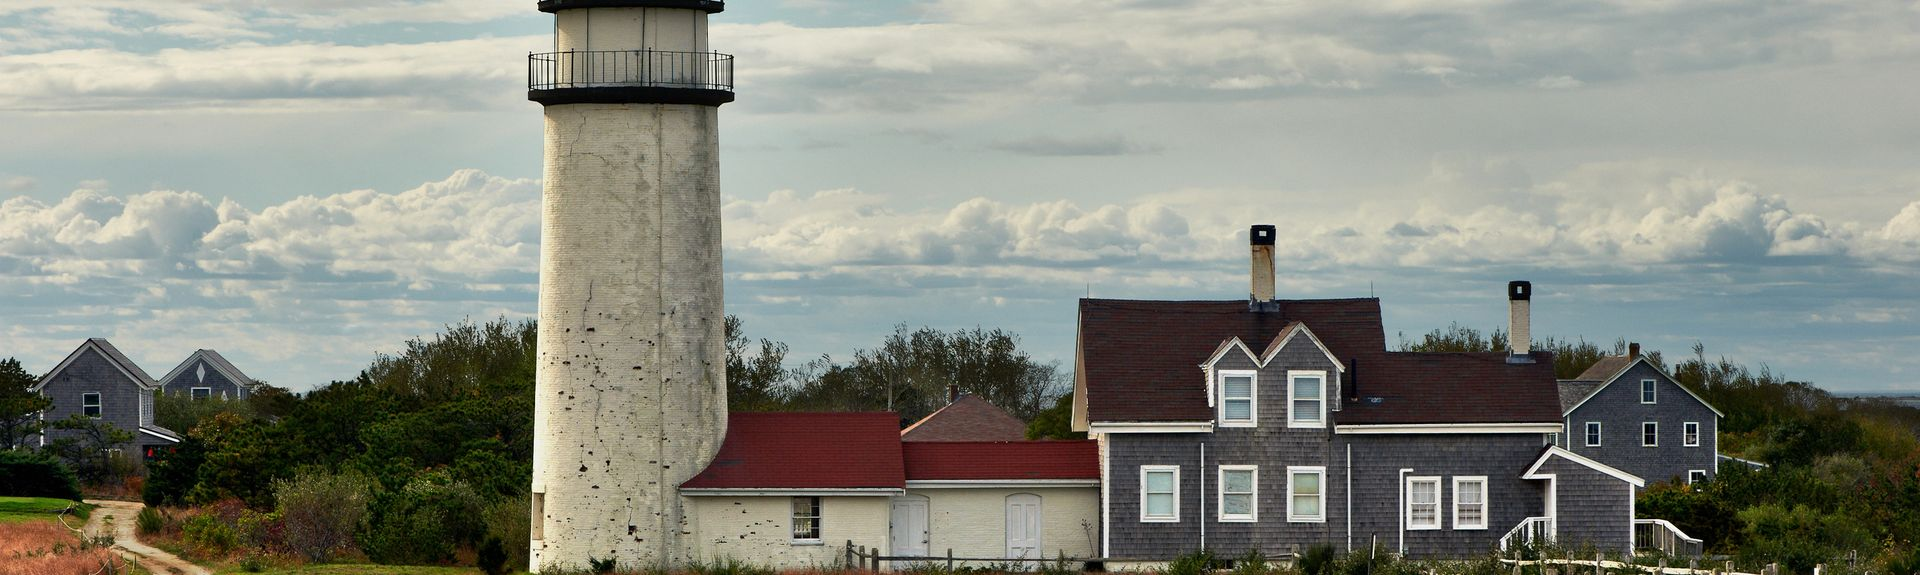 North Truro, Massachusetts, United States of America